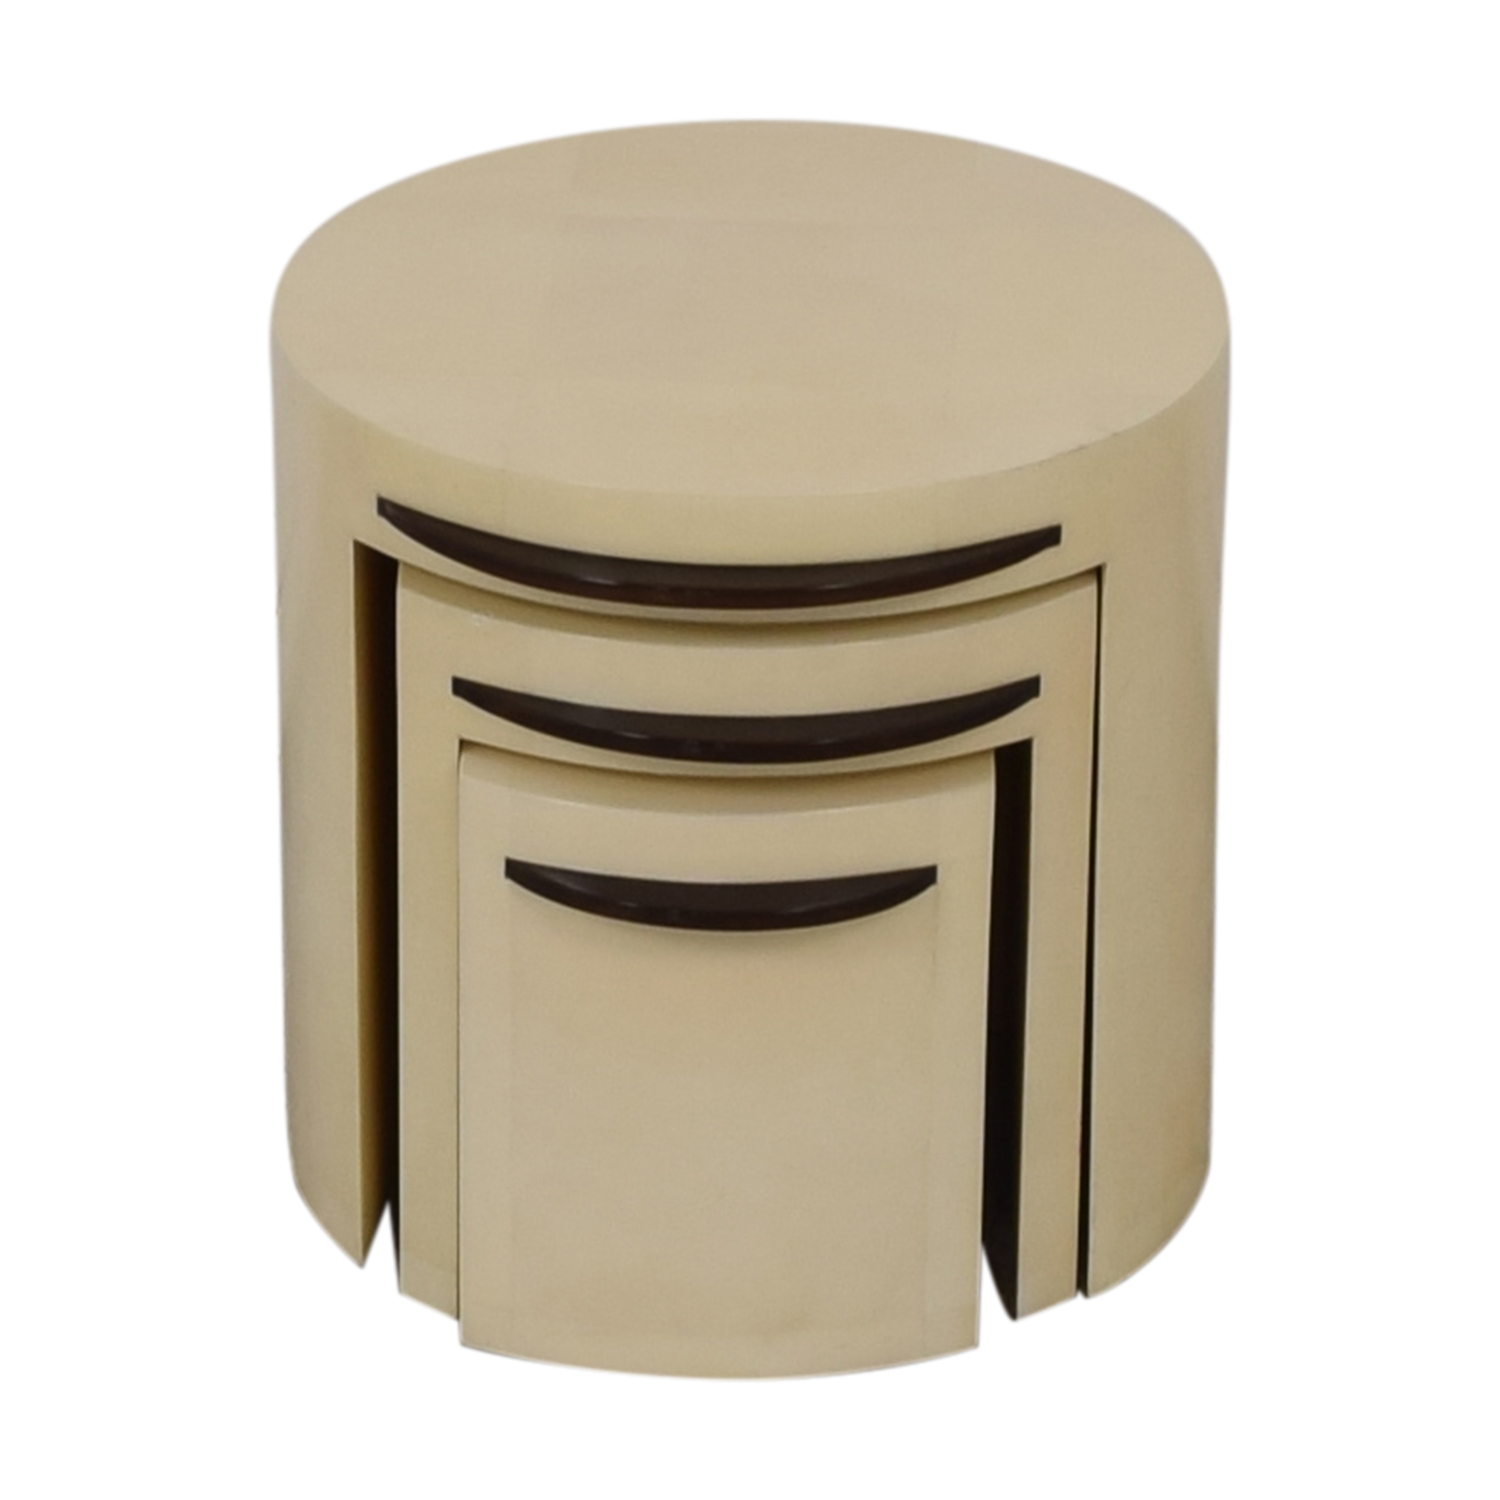 buy Lorin Marsh Lacquered Nesting Tables Lorin Marsh Tables